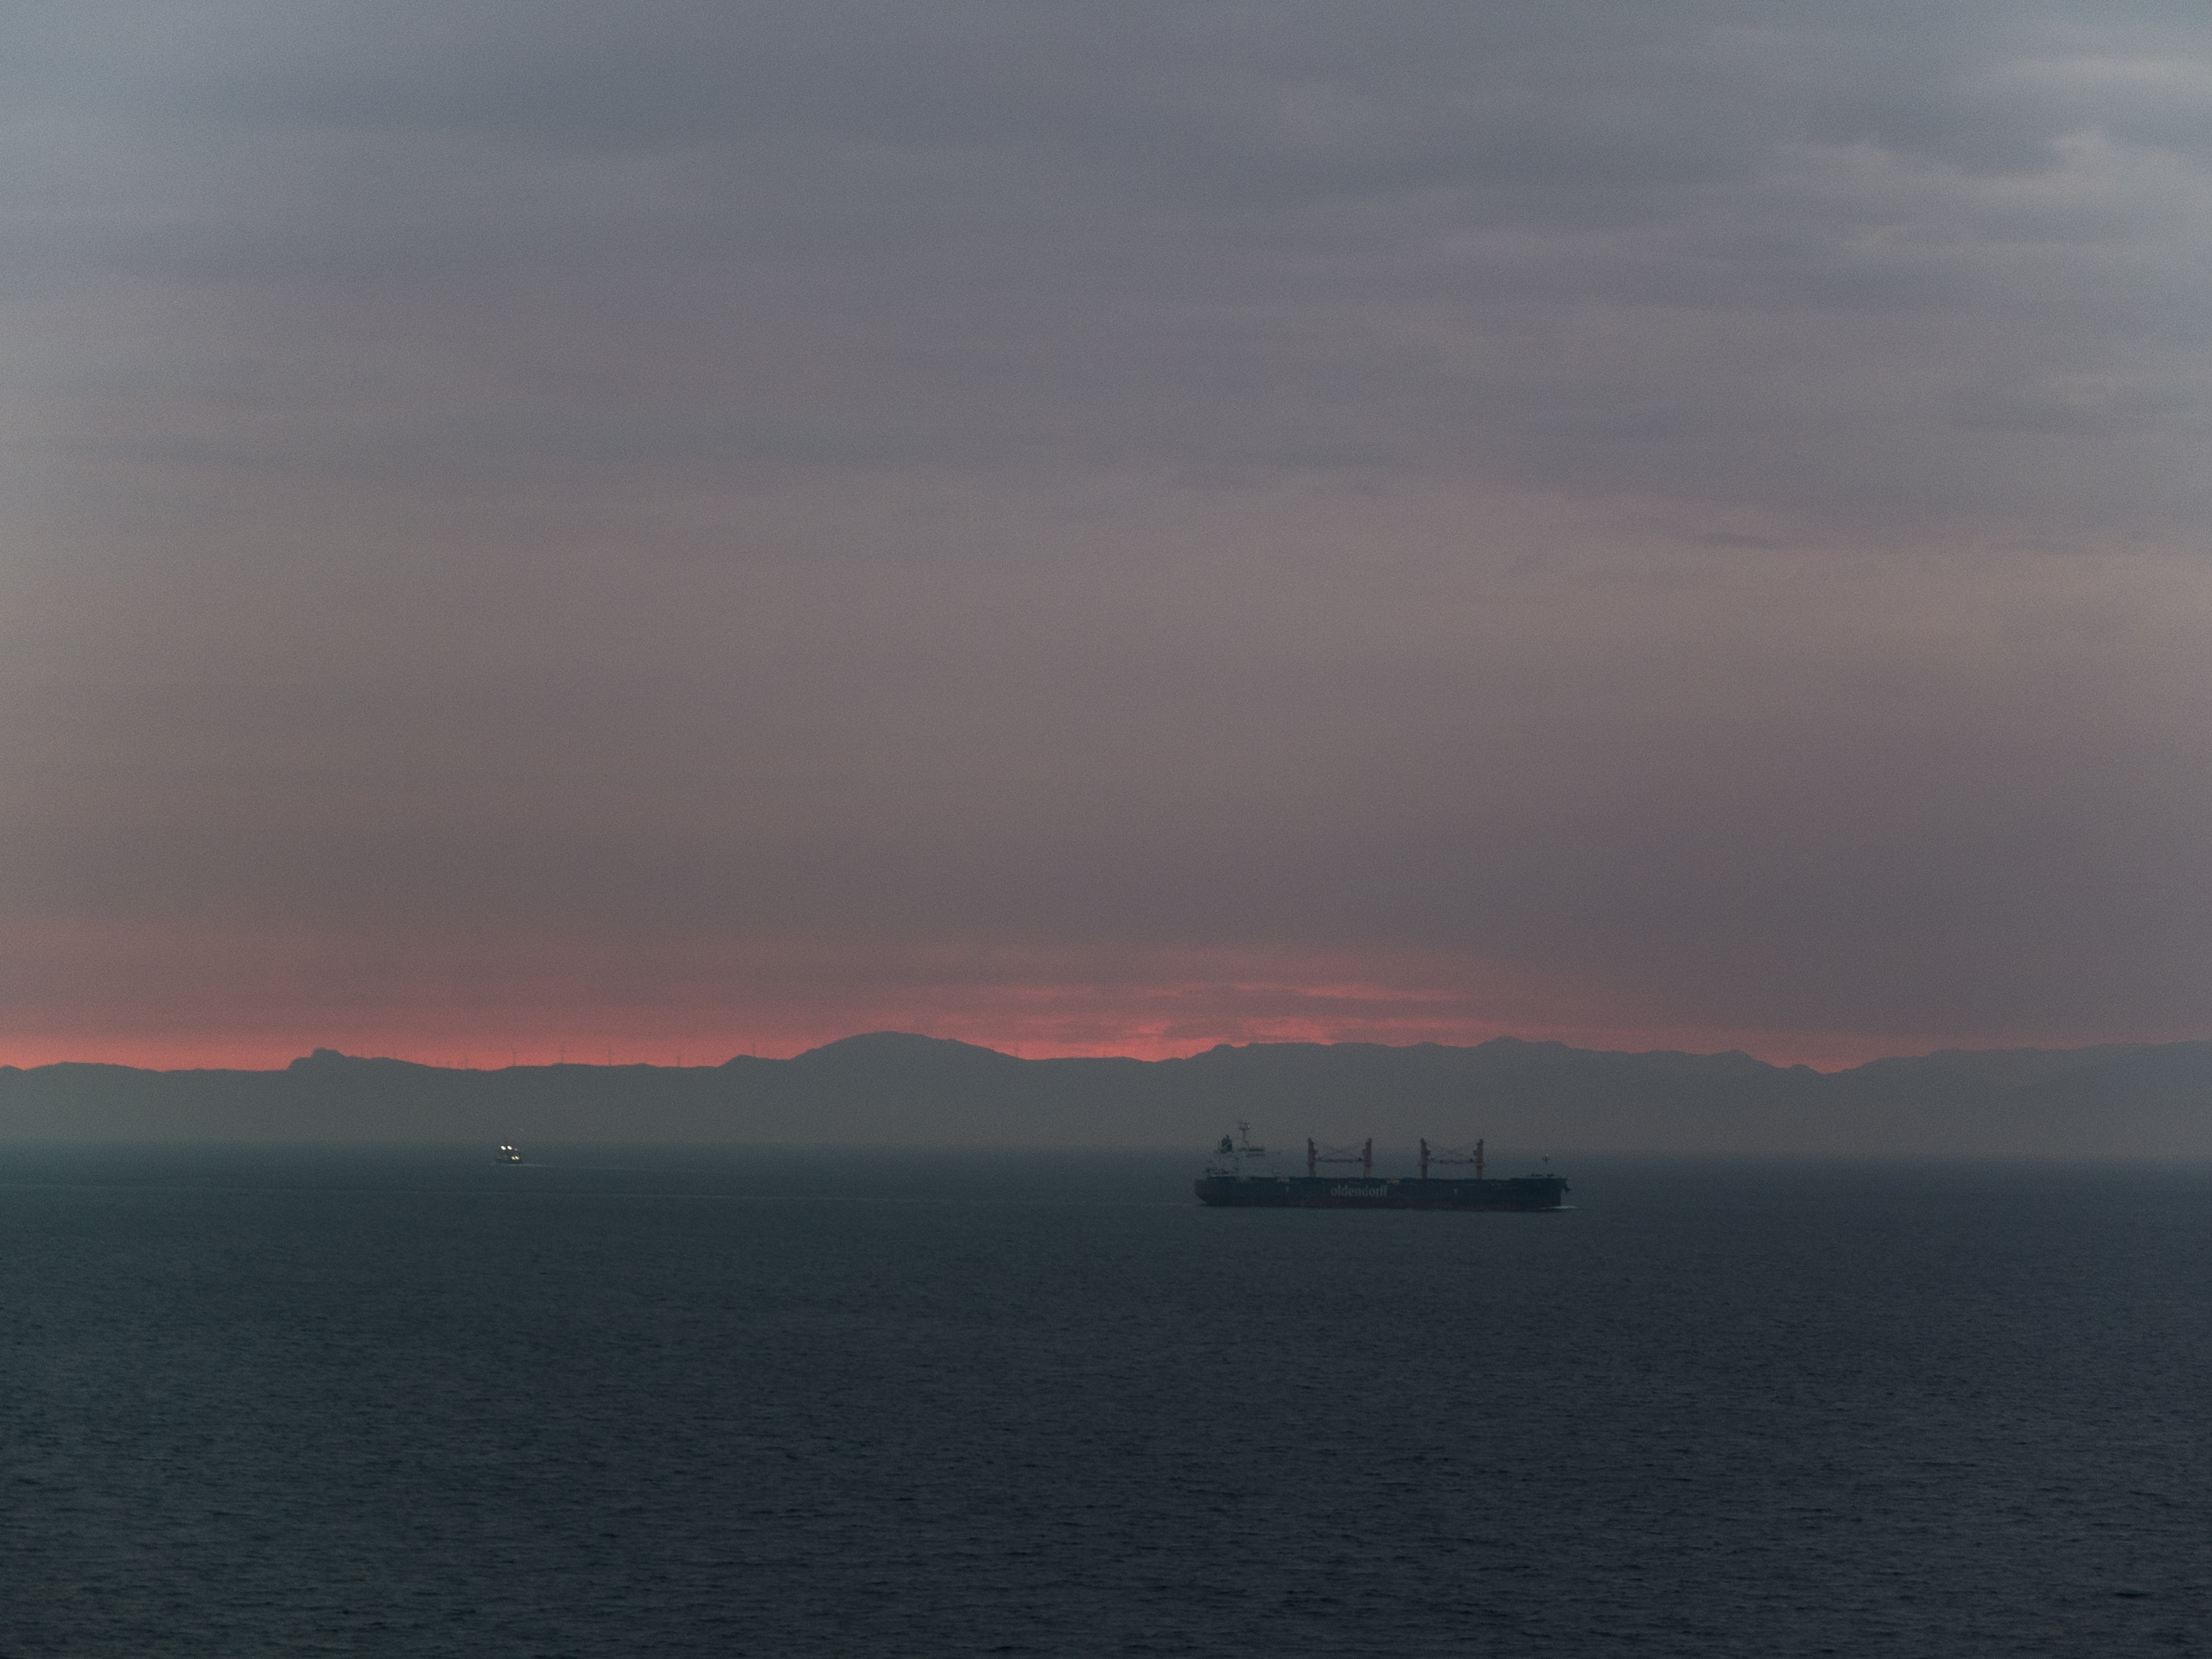 The landscape of Africa from the Strait of Gibraltar at sunrise.